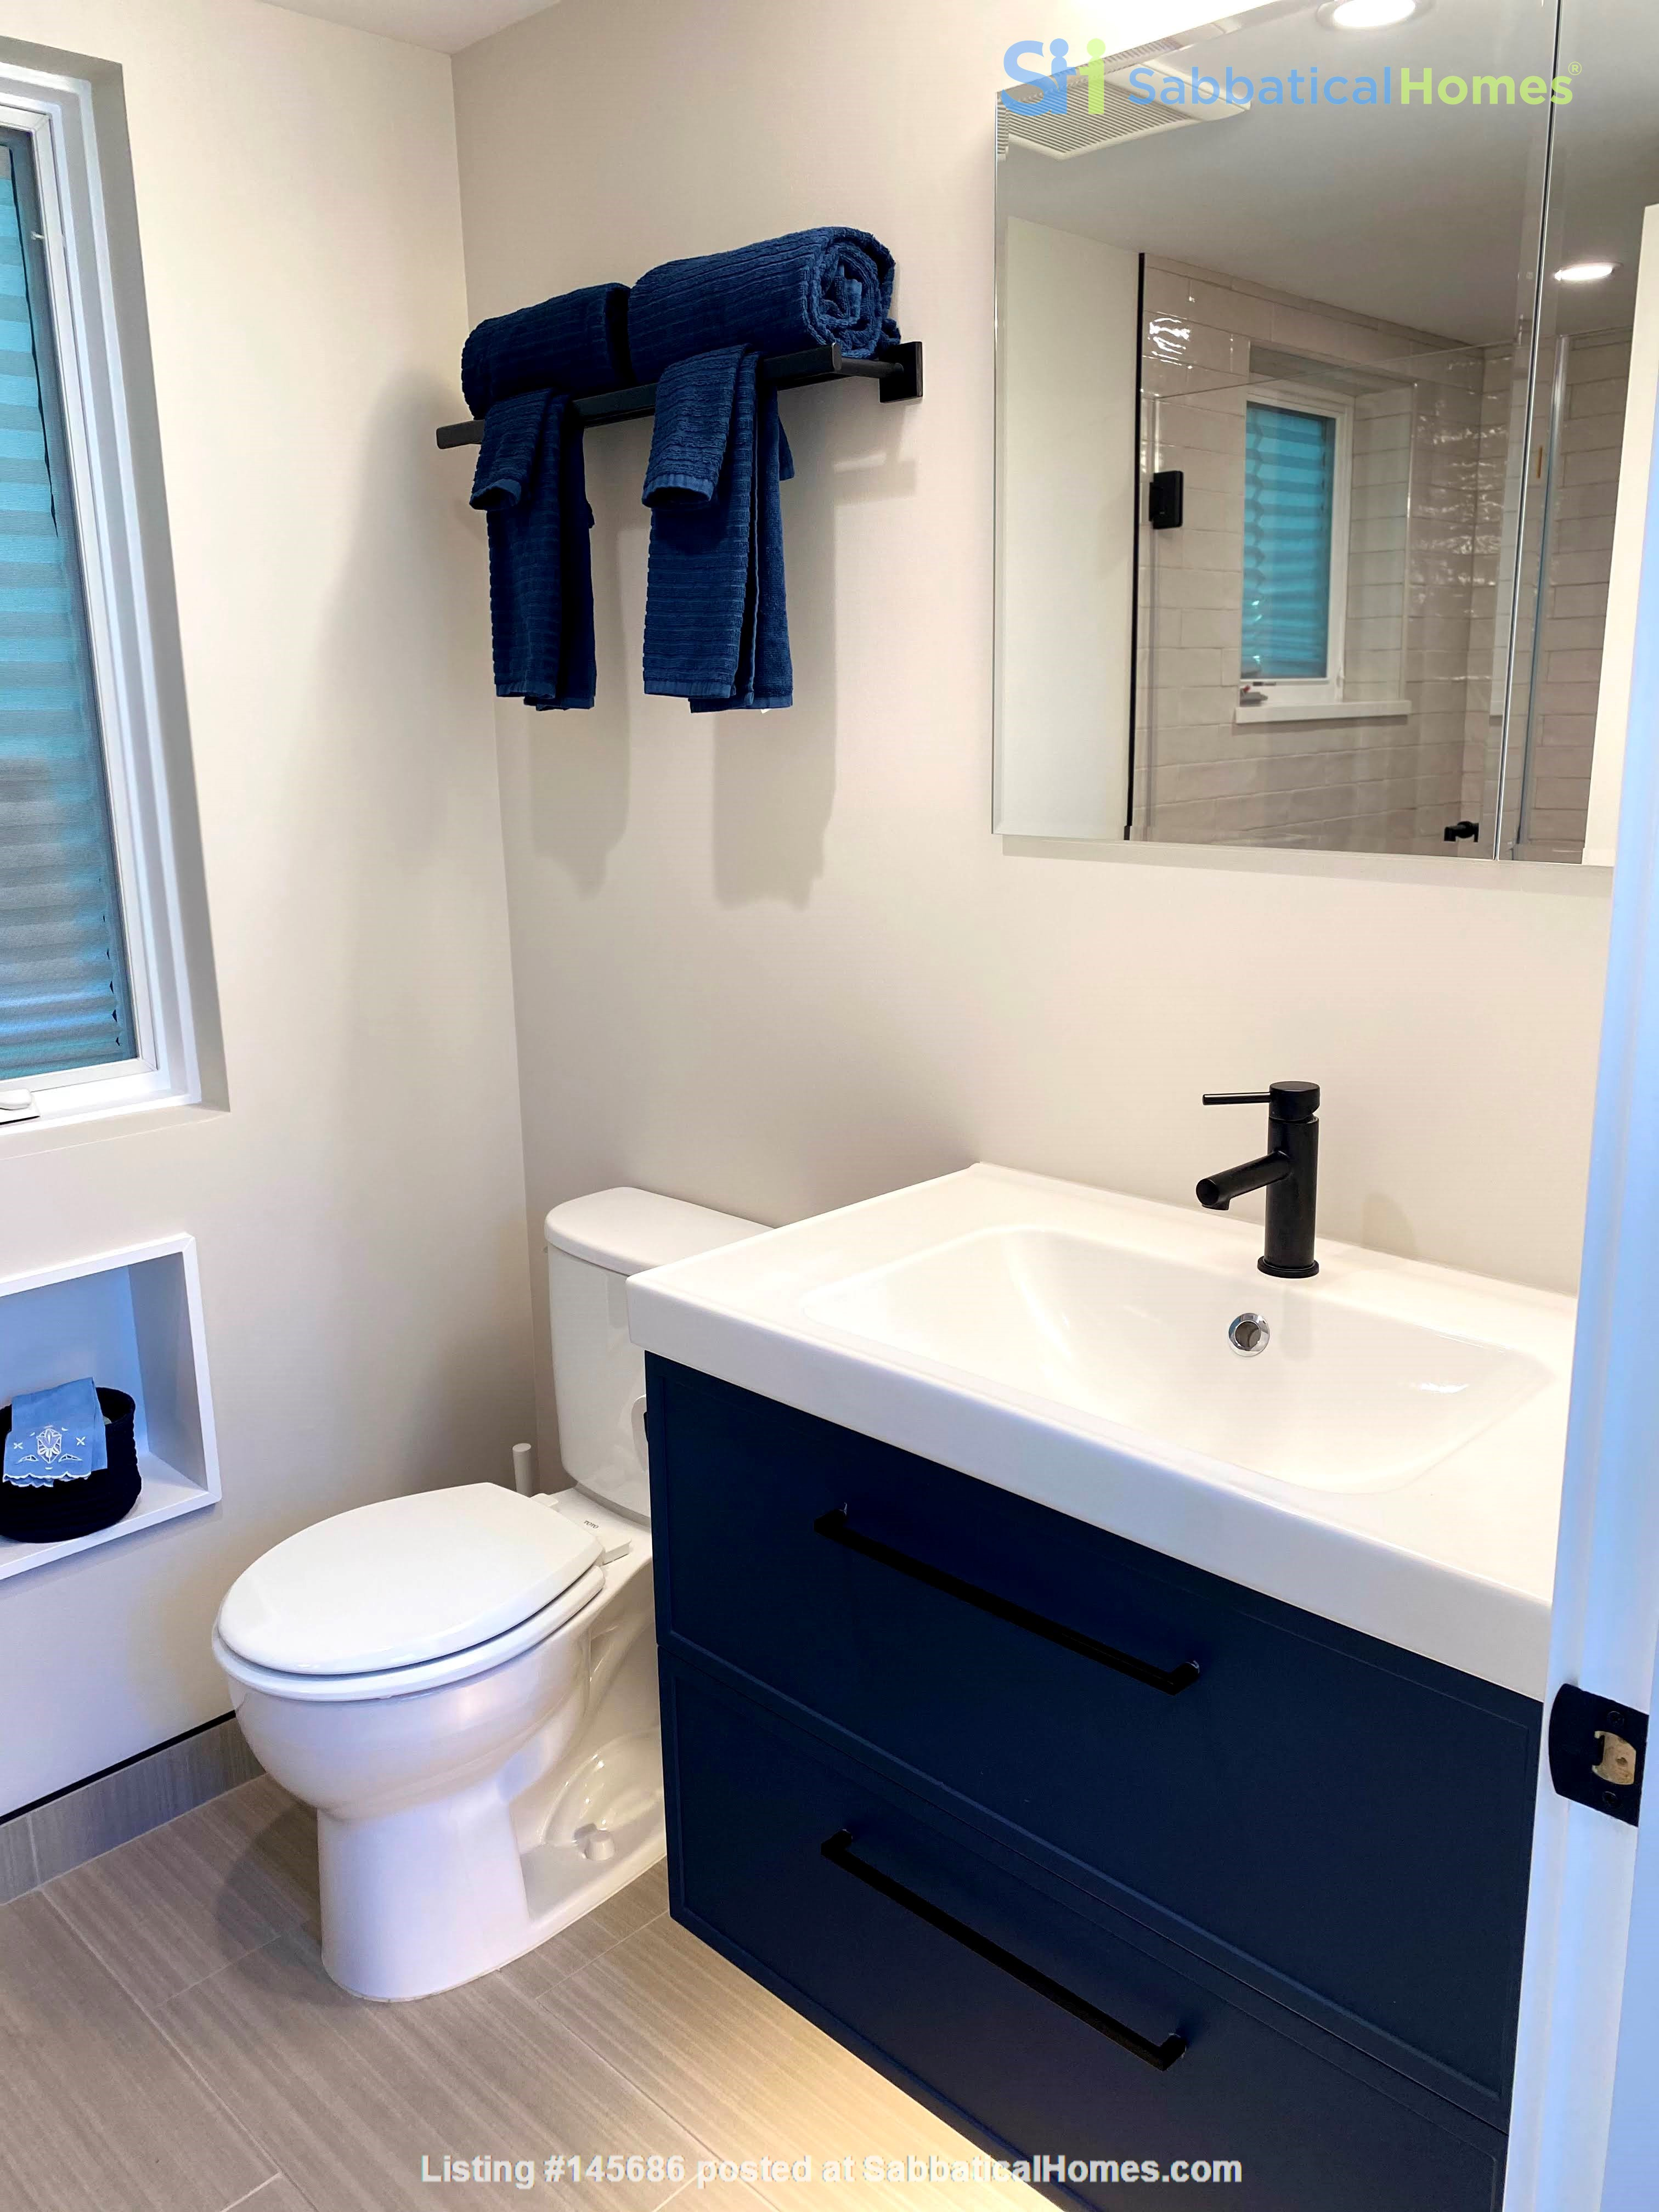 Newly Built Cosy and Modern South Berkeley Backyard Cottage - 1 Bed/1 Bath Home Rental in Berkeley 7